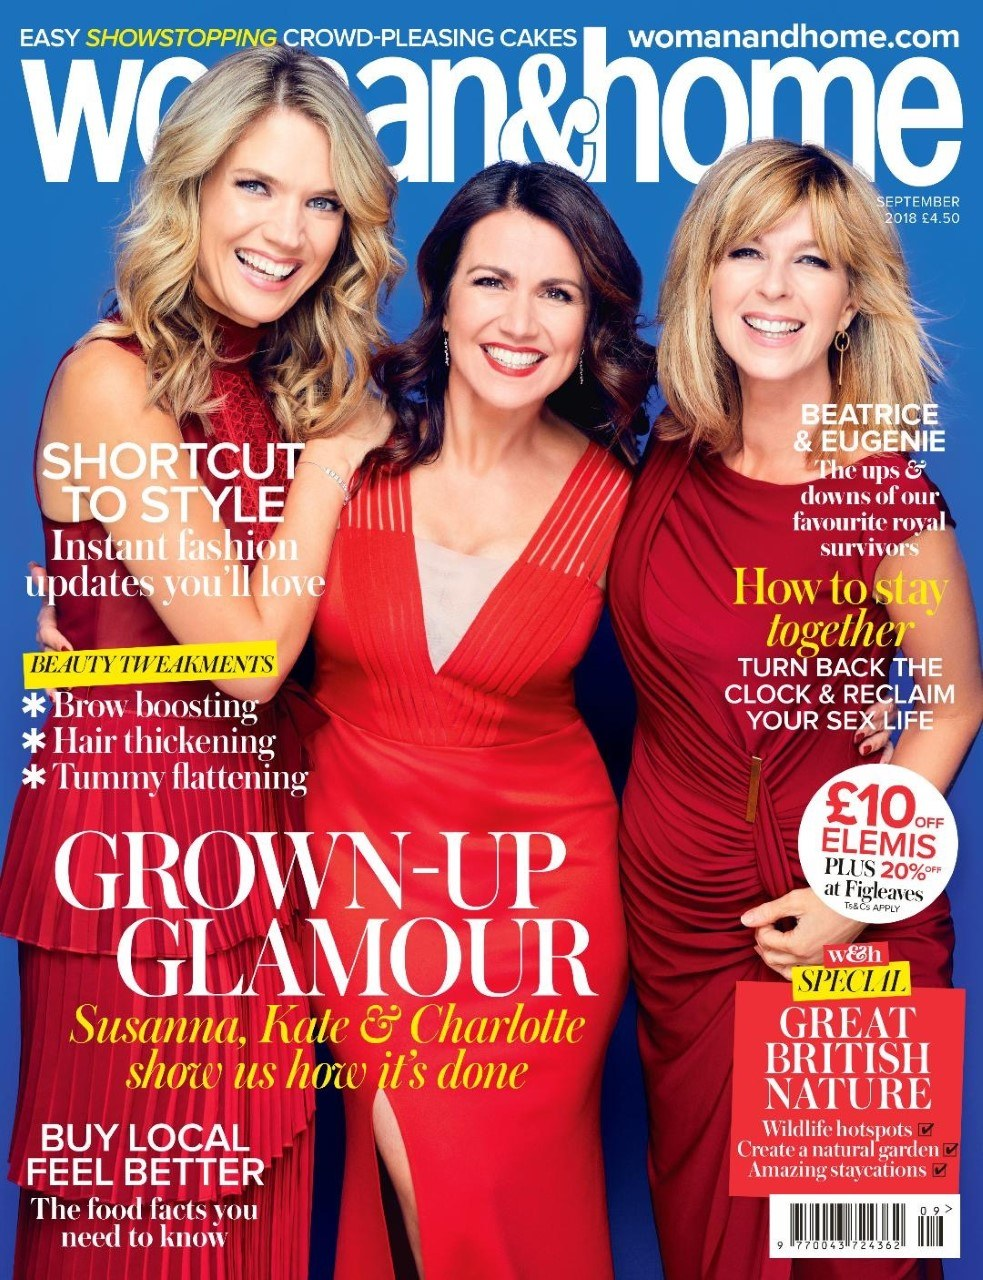 Woman-and-home-cover.jpg#asset:375